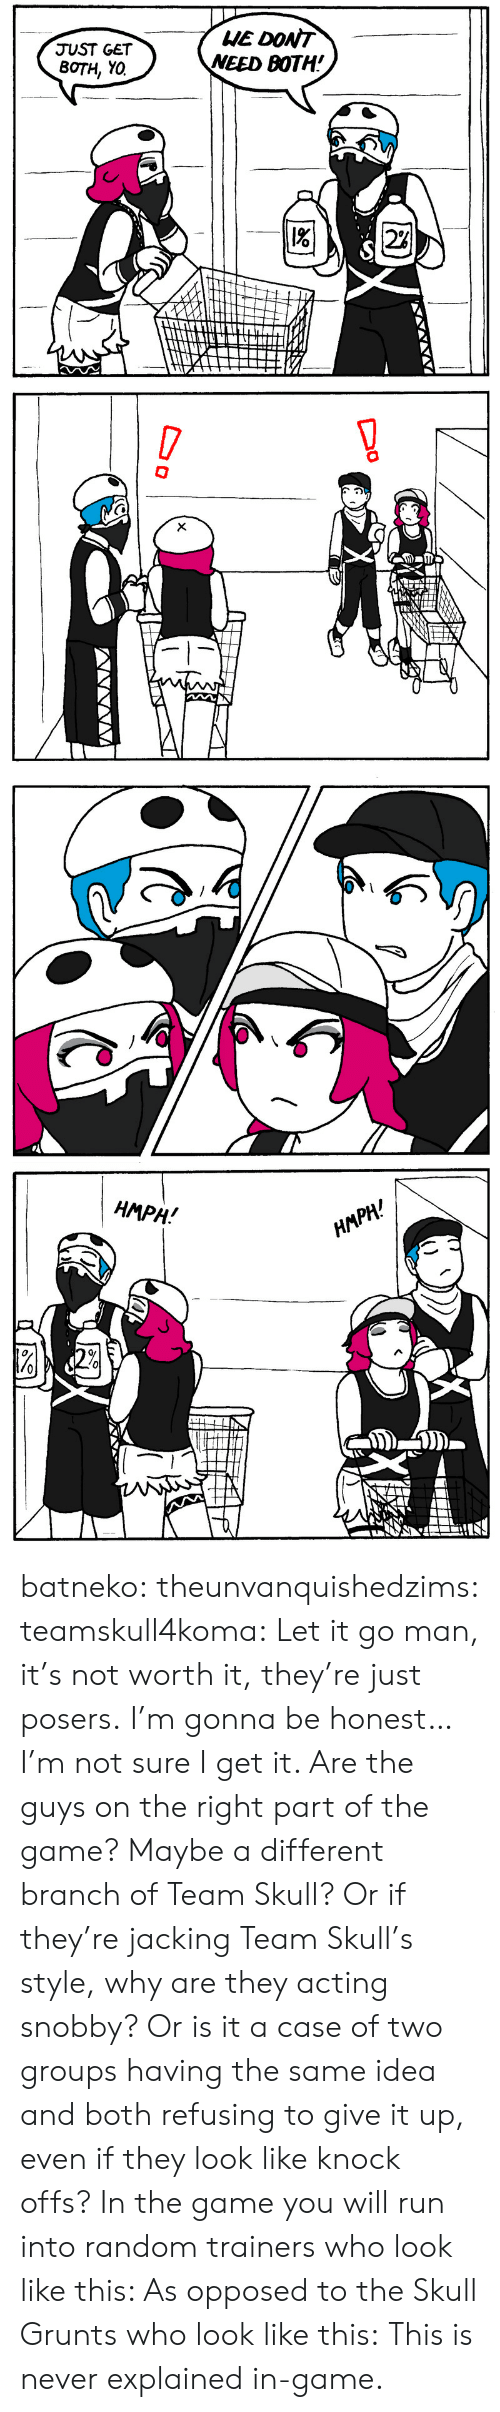 Grunts: HE DONT  NEED BOTH!  JUST GET  BOTH, YO  2%   !  X  D   НМPH!  HАРH! batneko:  theunvanquishedzims:  teamskull4koma: Let it go man, it's not worth it, they're just posers. I'm gonna be honest… I'm not sure I get it. Are the guys on the right part of the game? Maybe a different branch of Team Skull? Or if they're jacking Team Skull's style, why are they acting snobby? Or is it a case of two groups having the same idea and both refusing to give it up, even if they look like knock offs?  In the game you will run into random trainers who look like this:  As opposed to the Skull Grunts who look like this: This is never explained in-game.